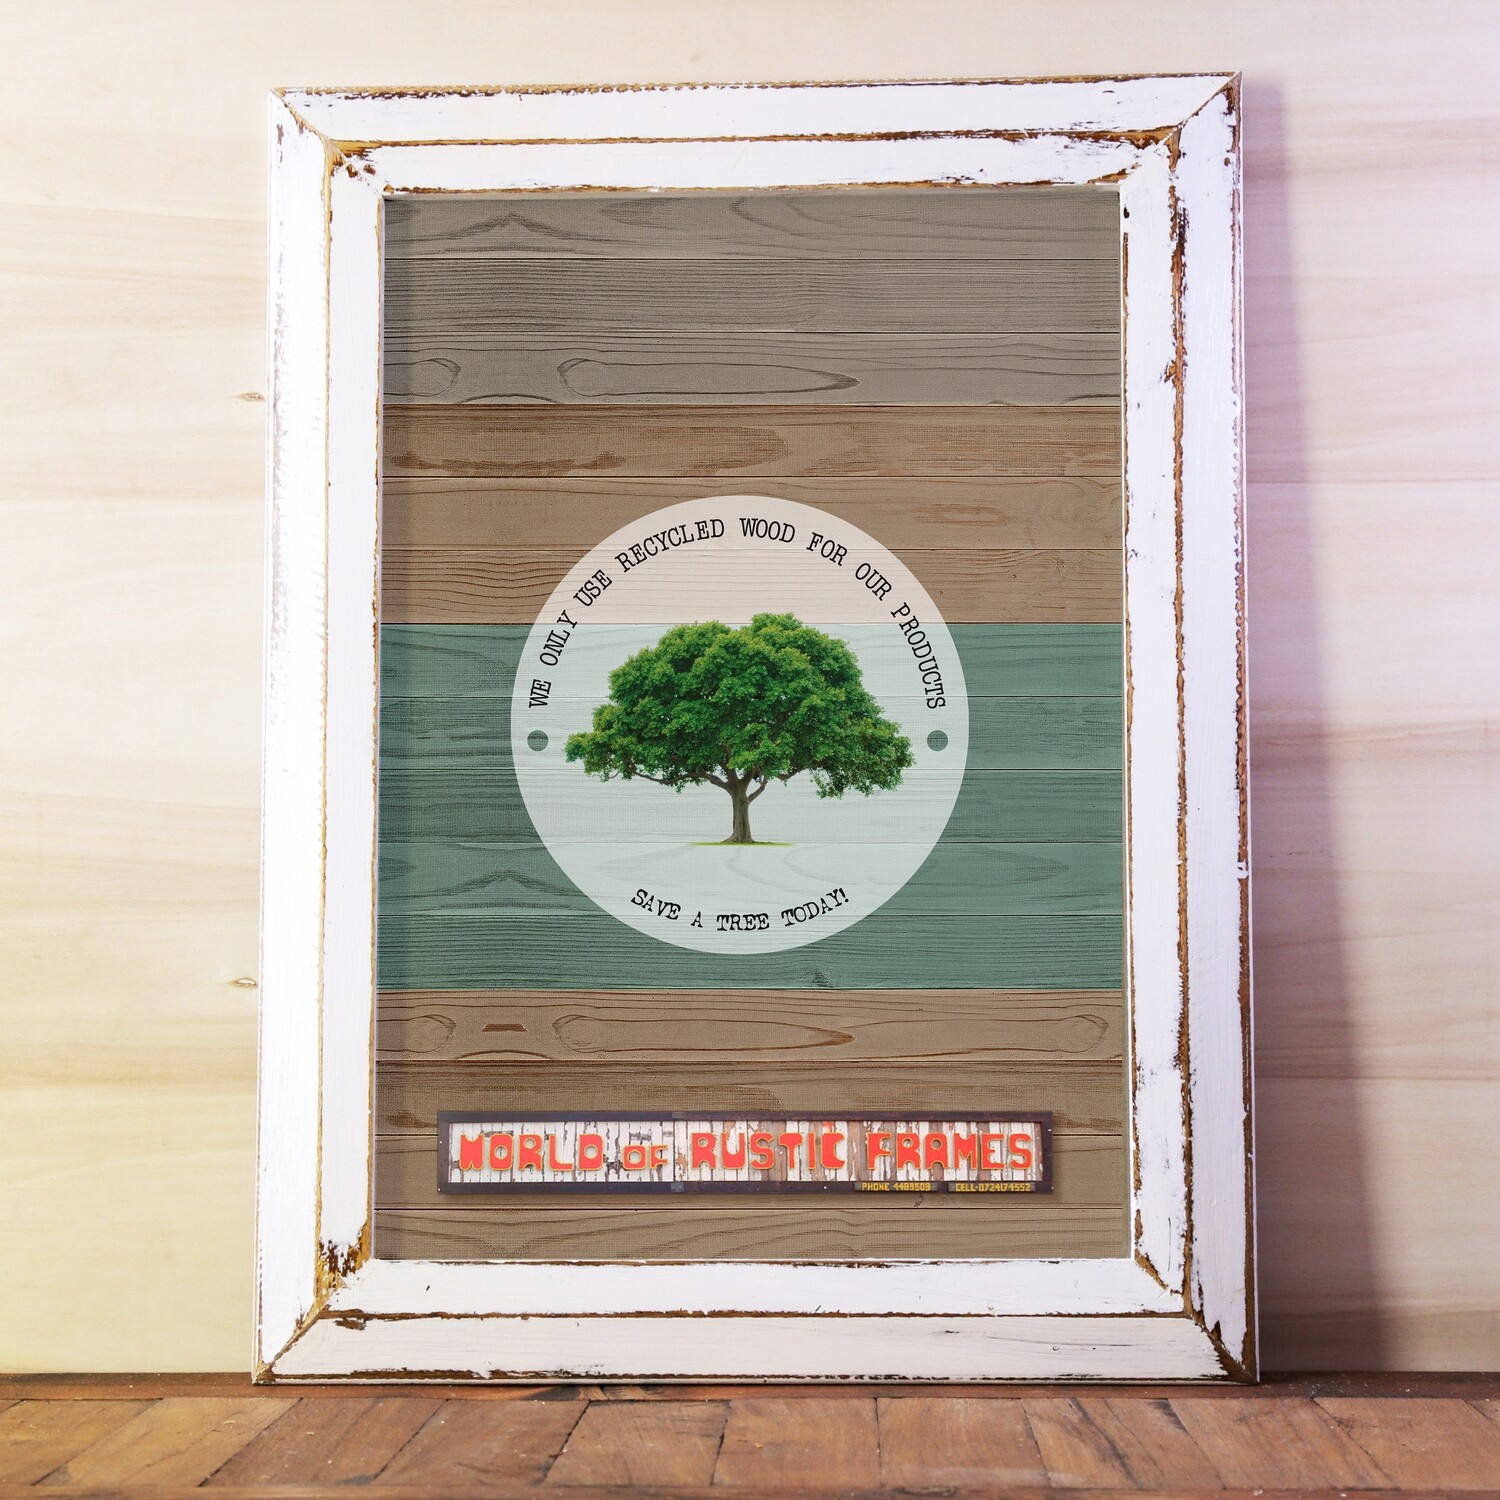 A2 Rustic wooden frames - 42 cm x 59.4 cm Photo size (16.53 x 23.39 inches)